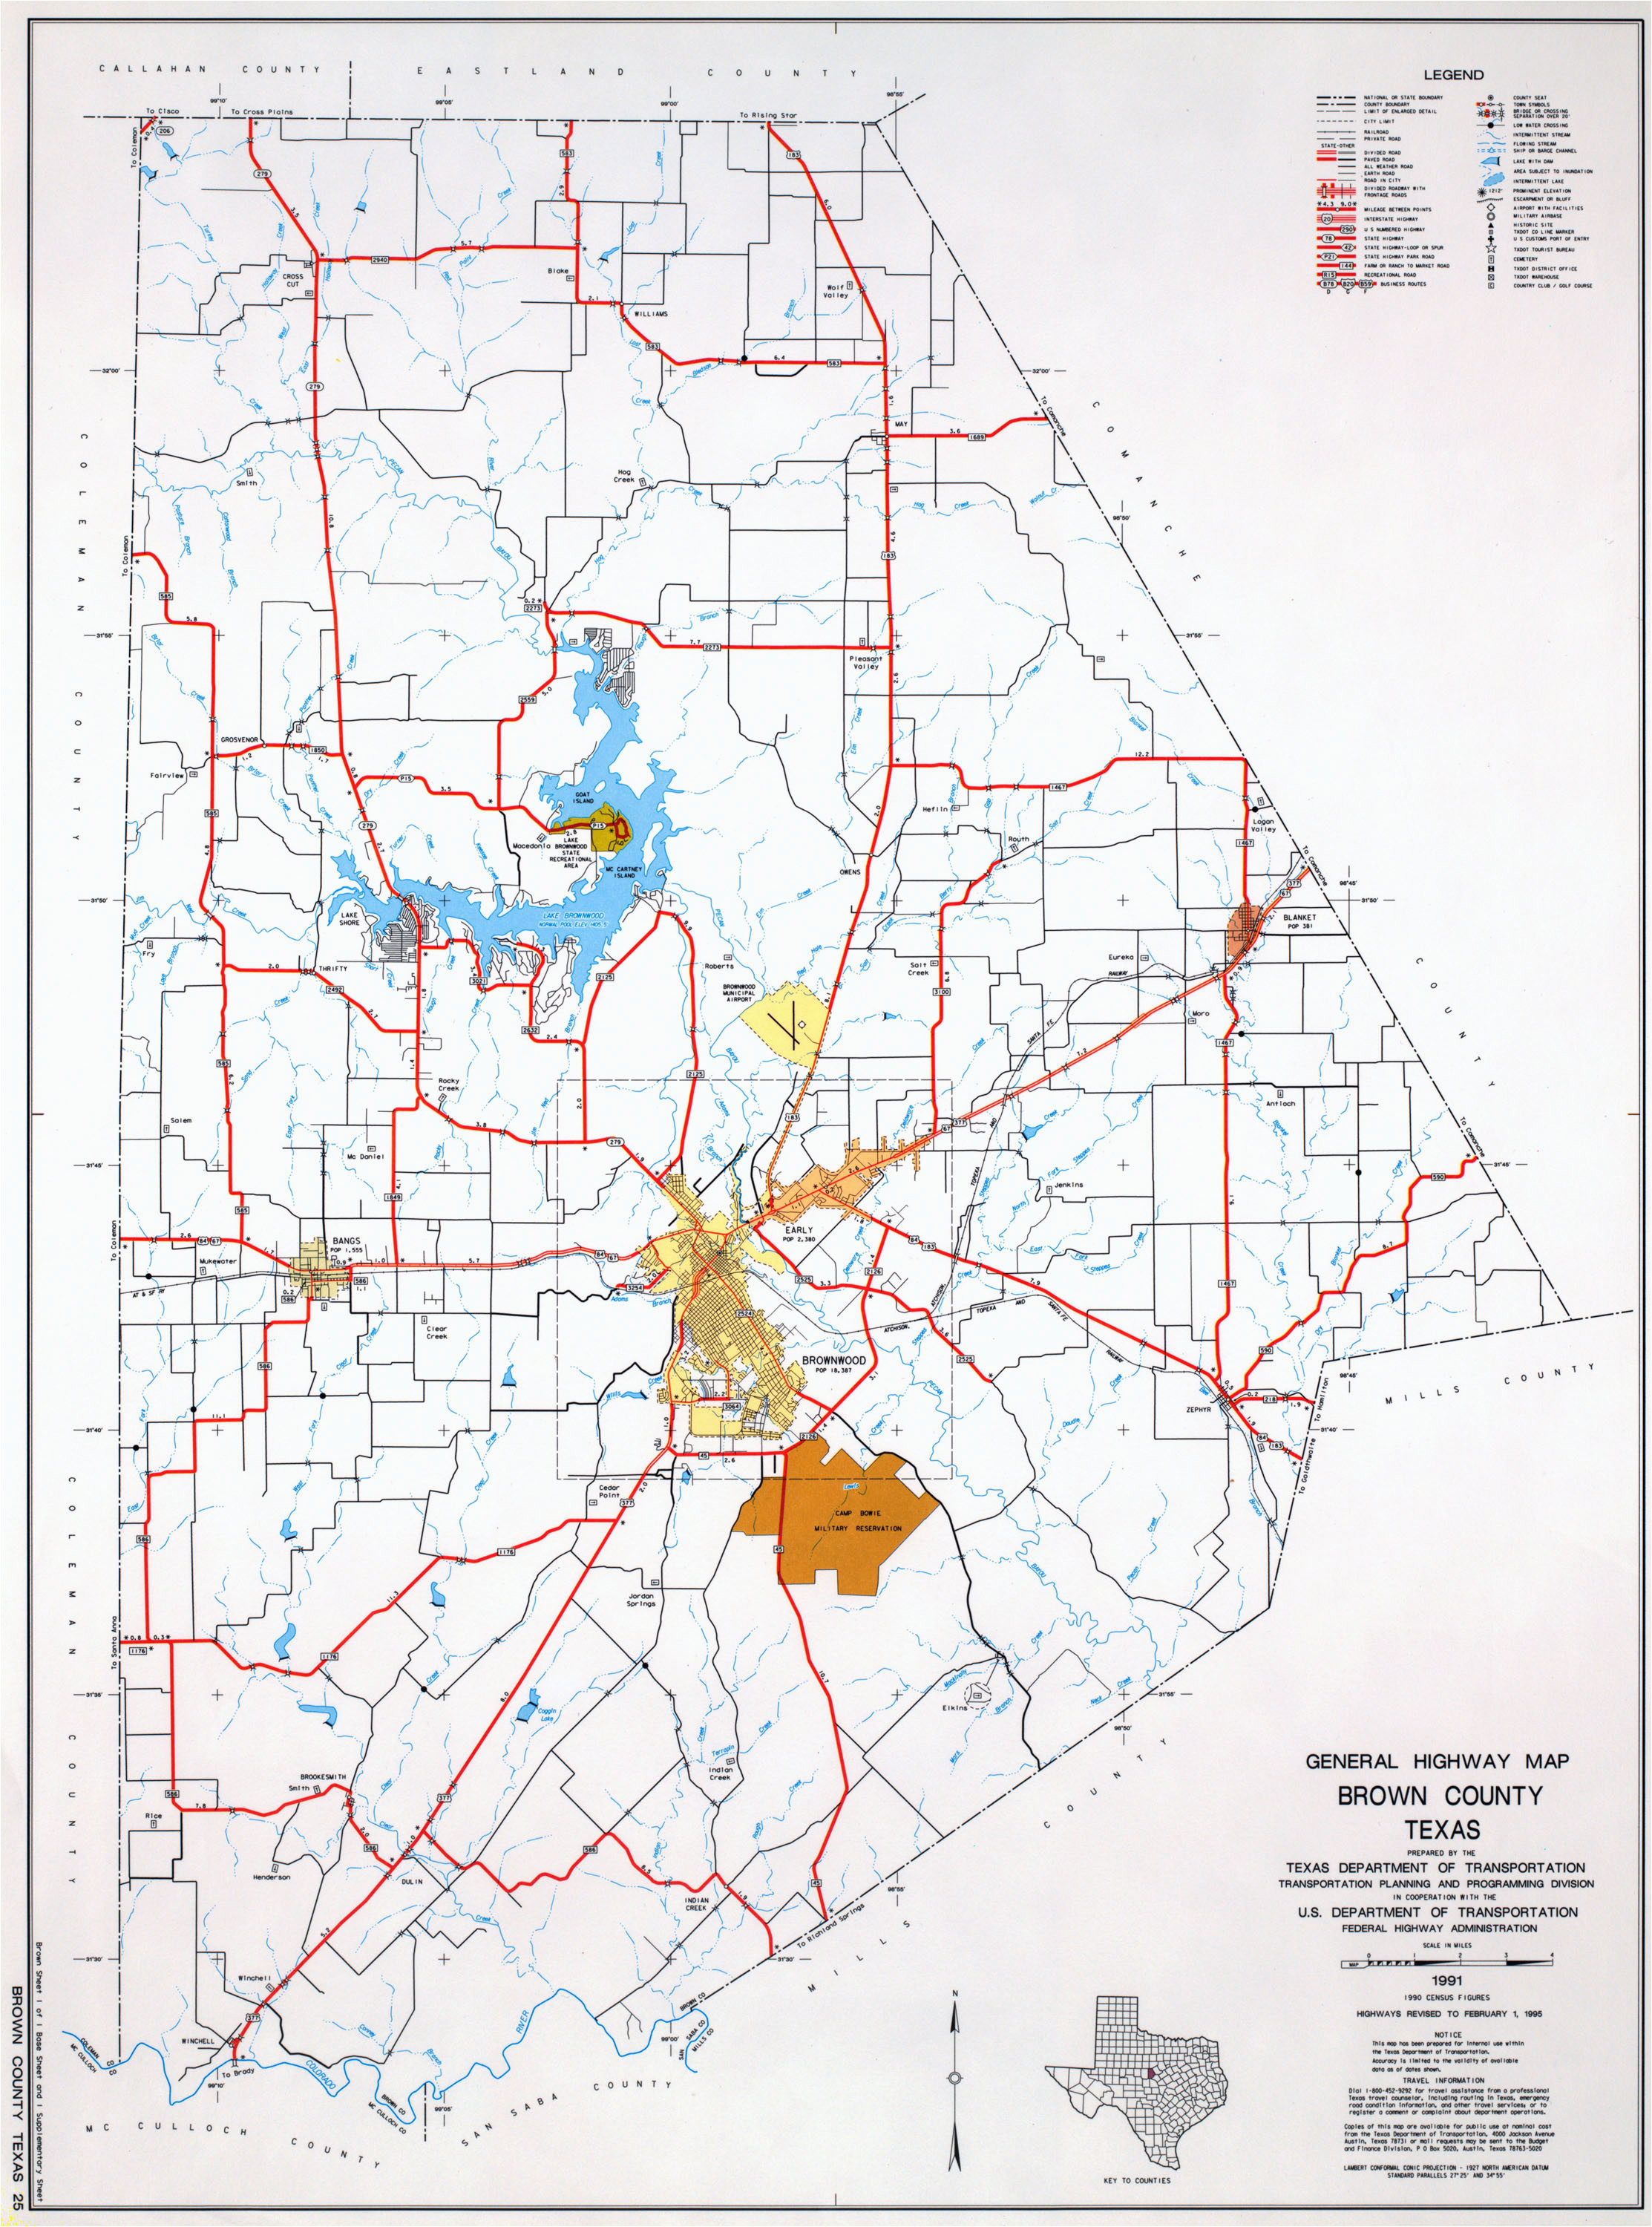 State Of Texas County Map.Texas State Map With Counties Texas County Highway Maps Browse Perry